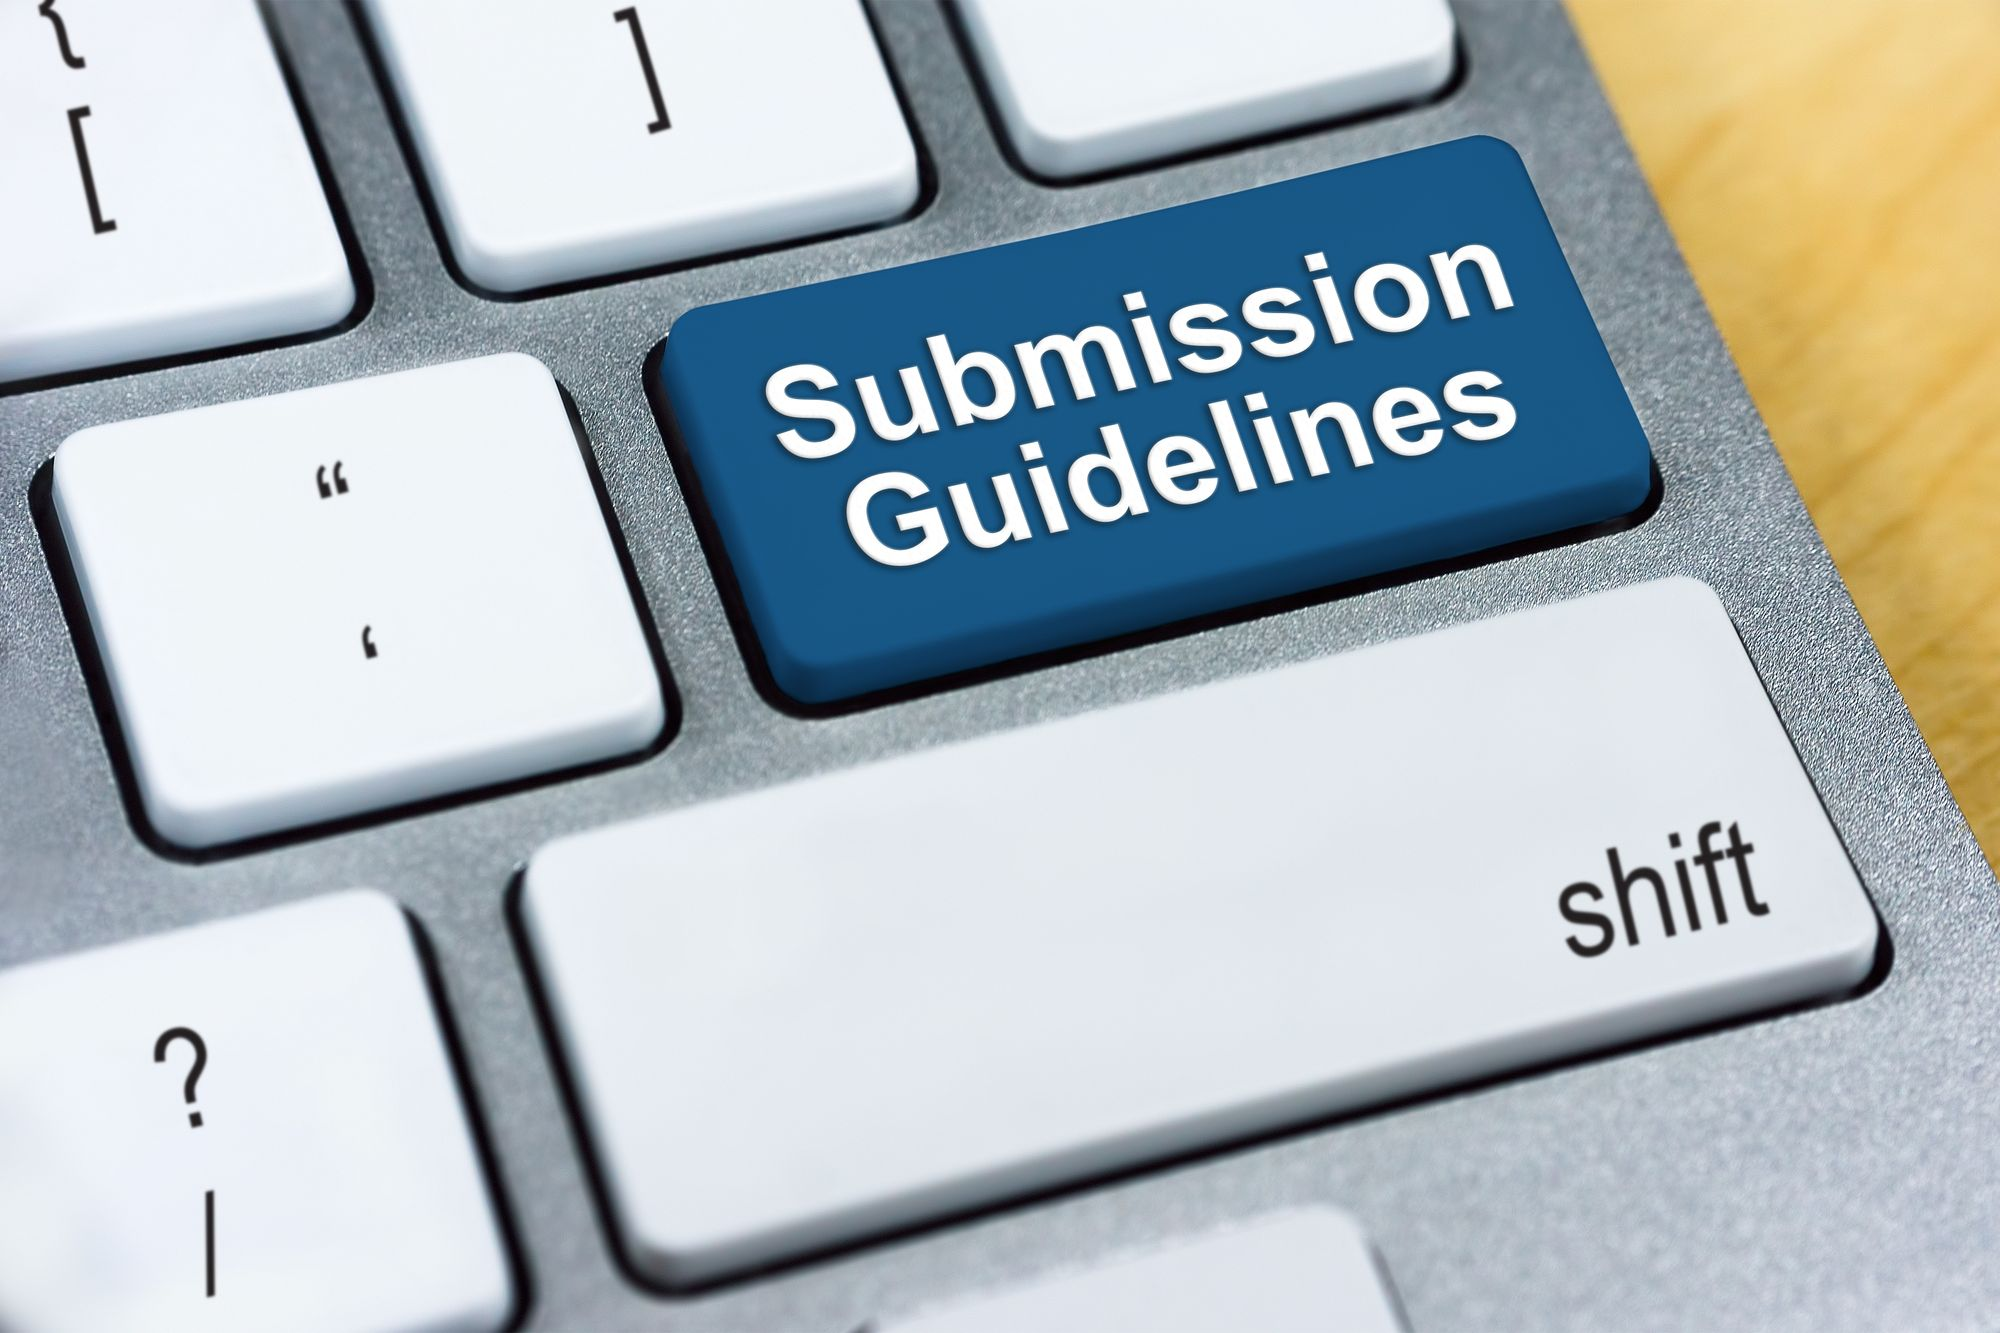 Issue 1: Submission Guidelines